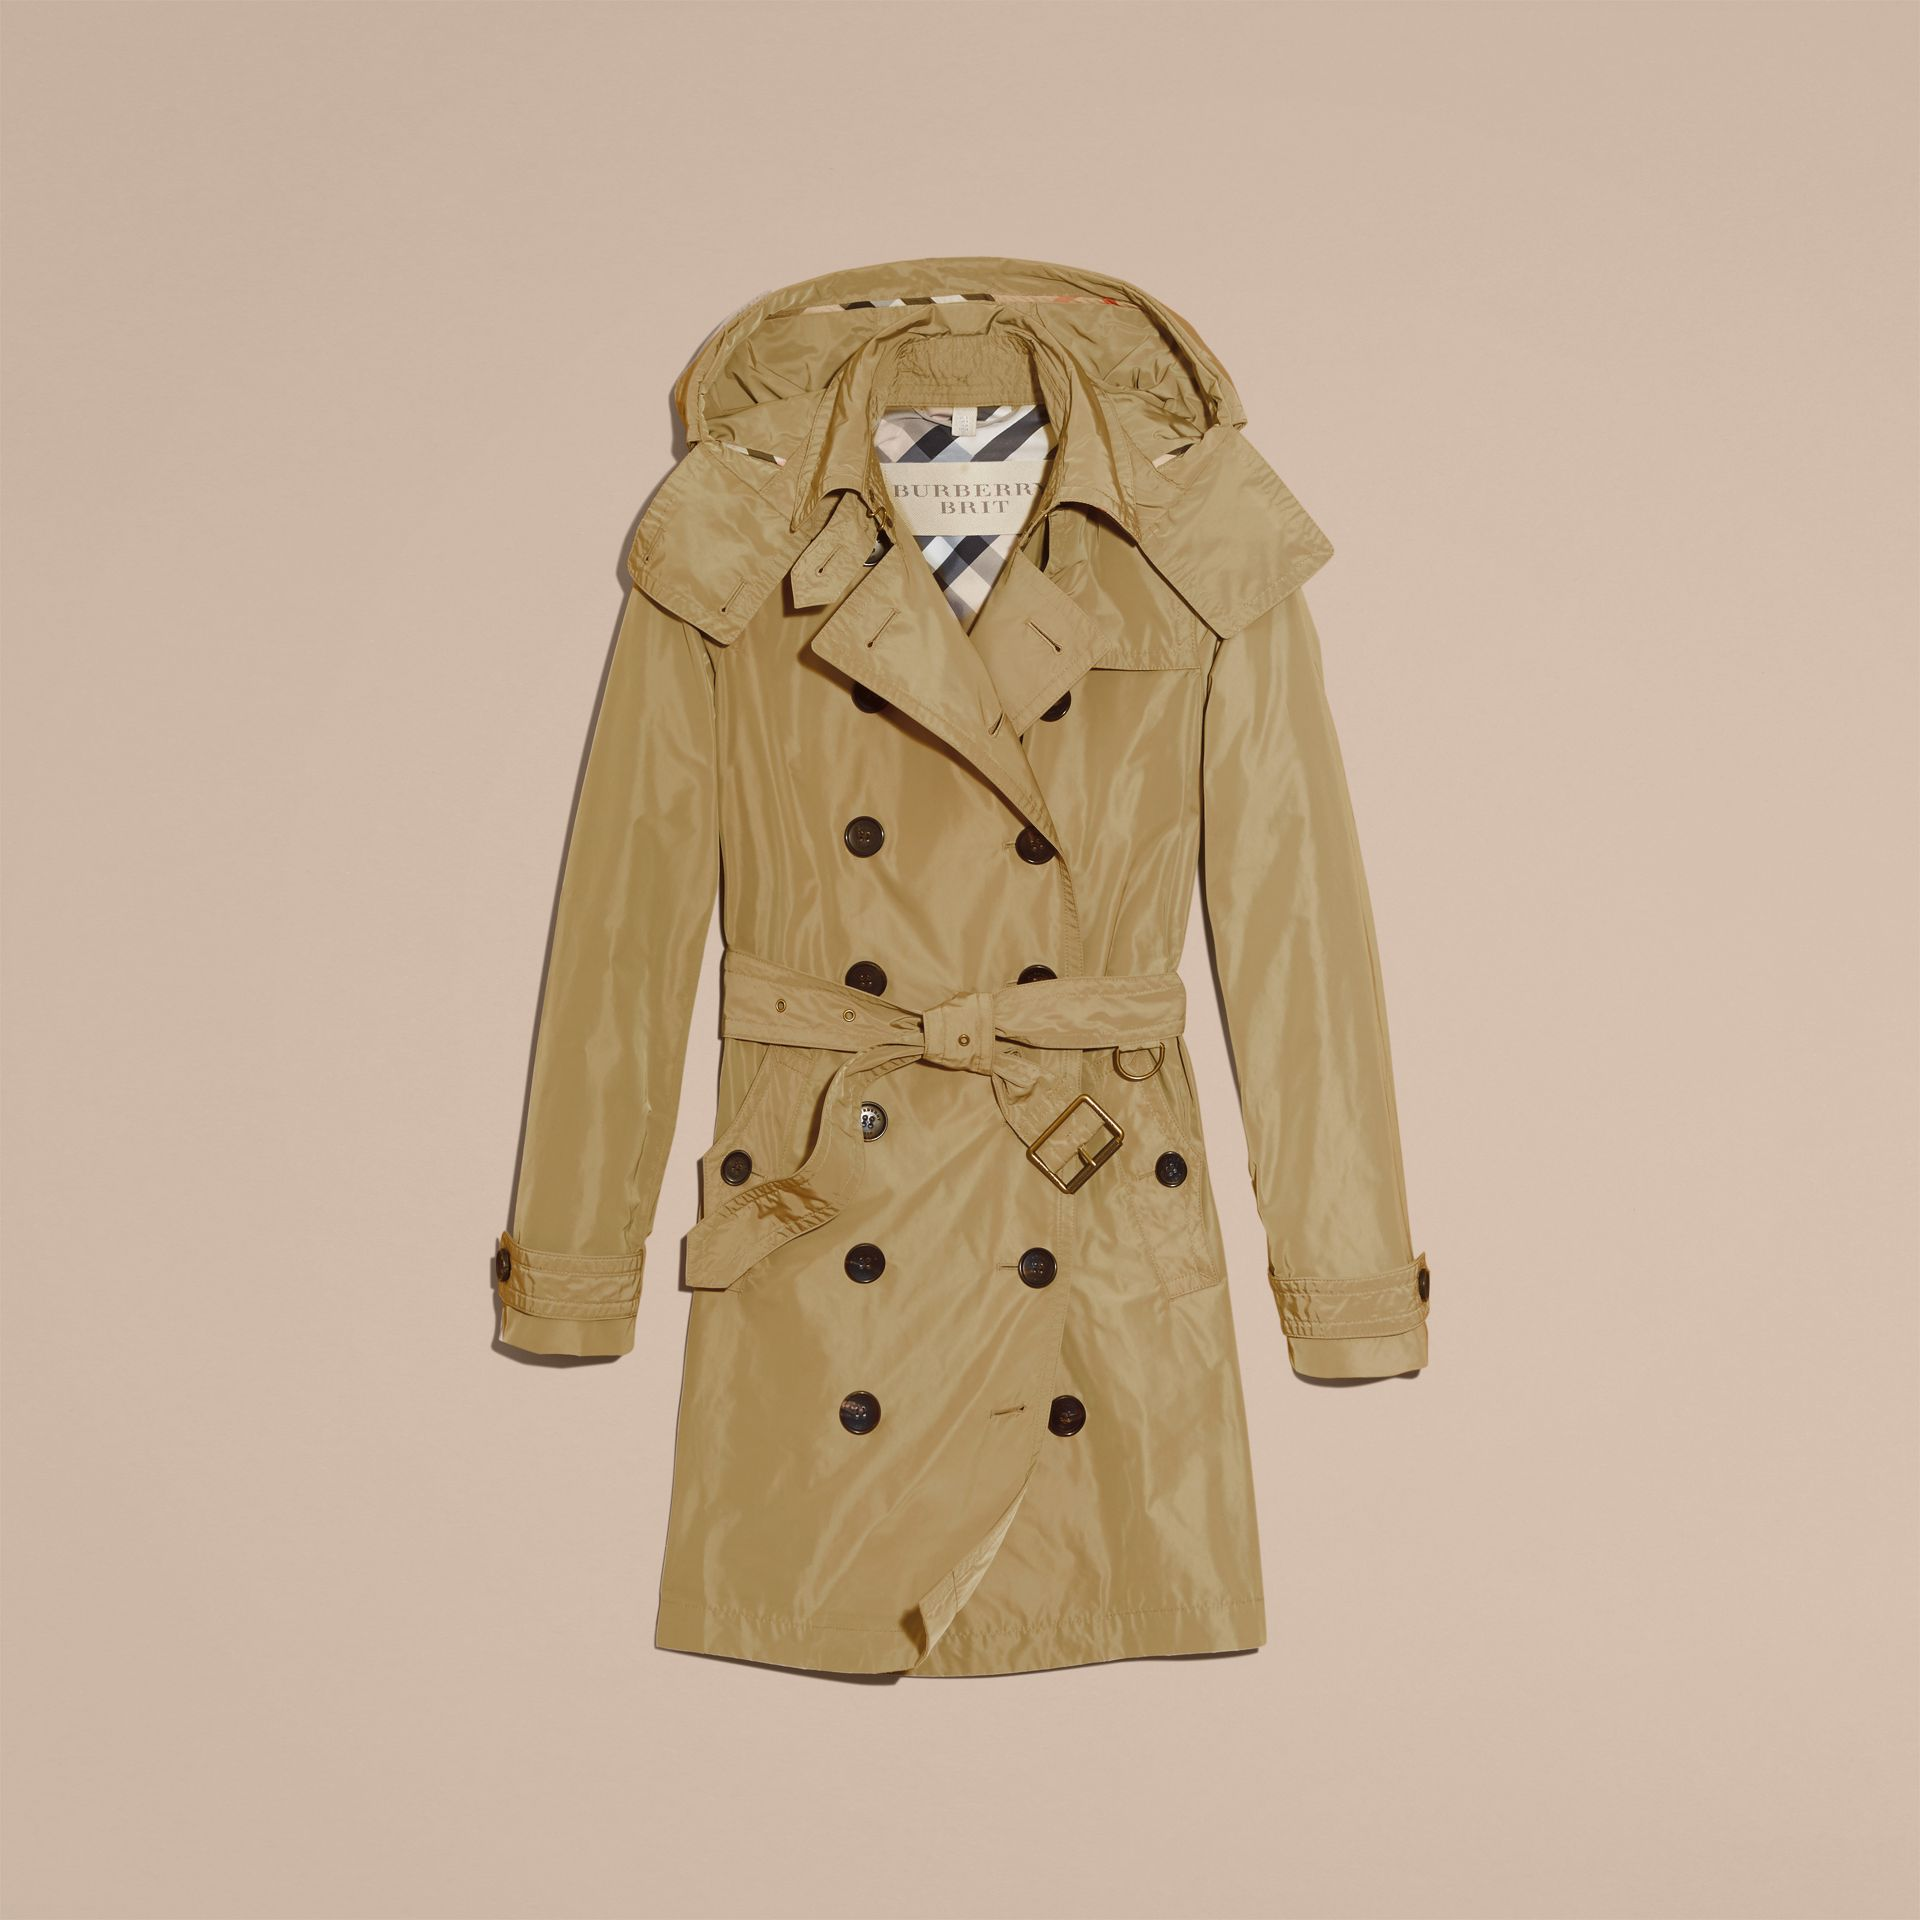 Taffeta Trench Coat with Detachable Hood in Sisal - Women | Burberry - gallery image 4